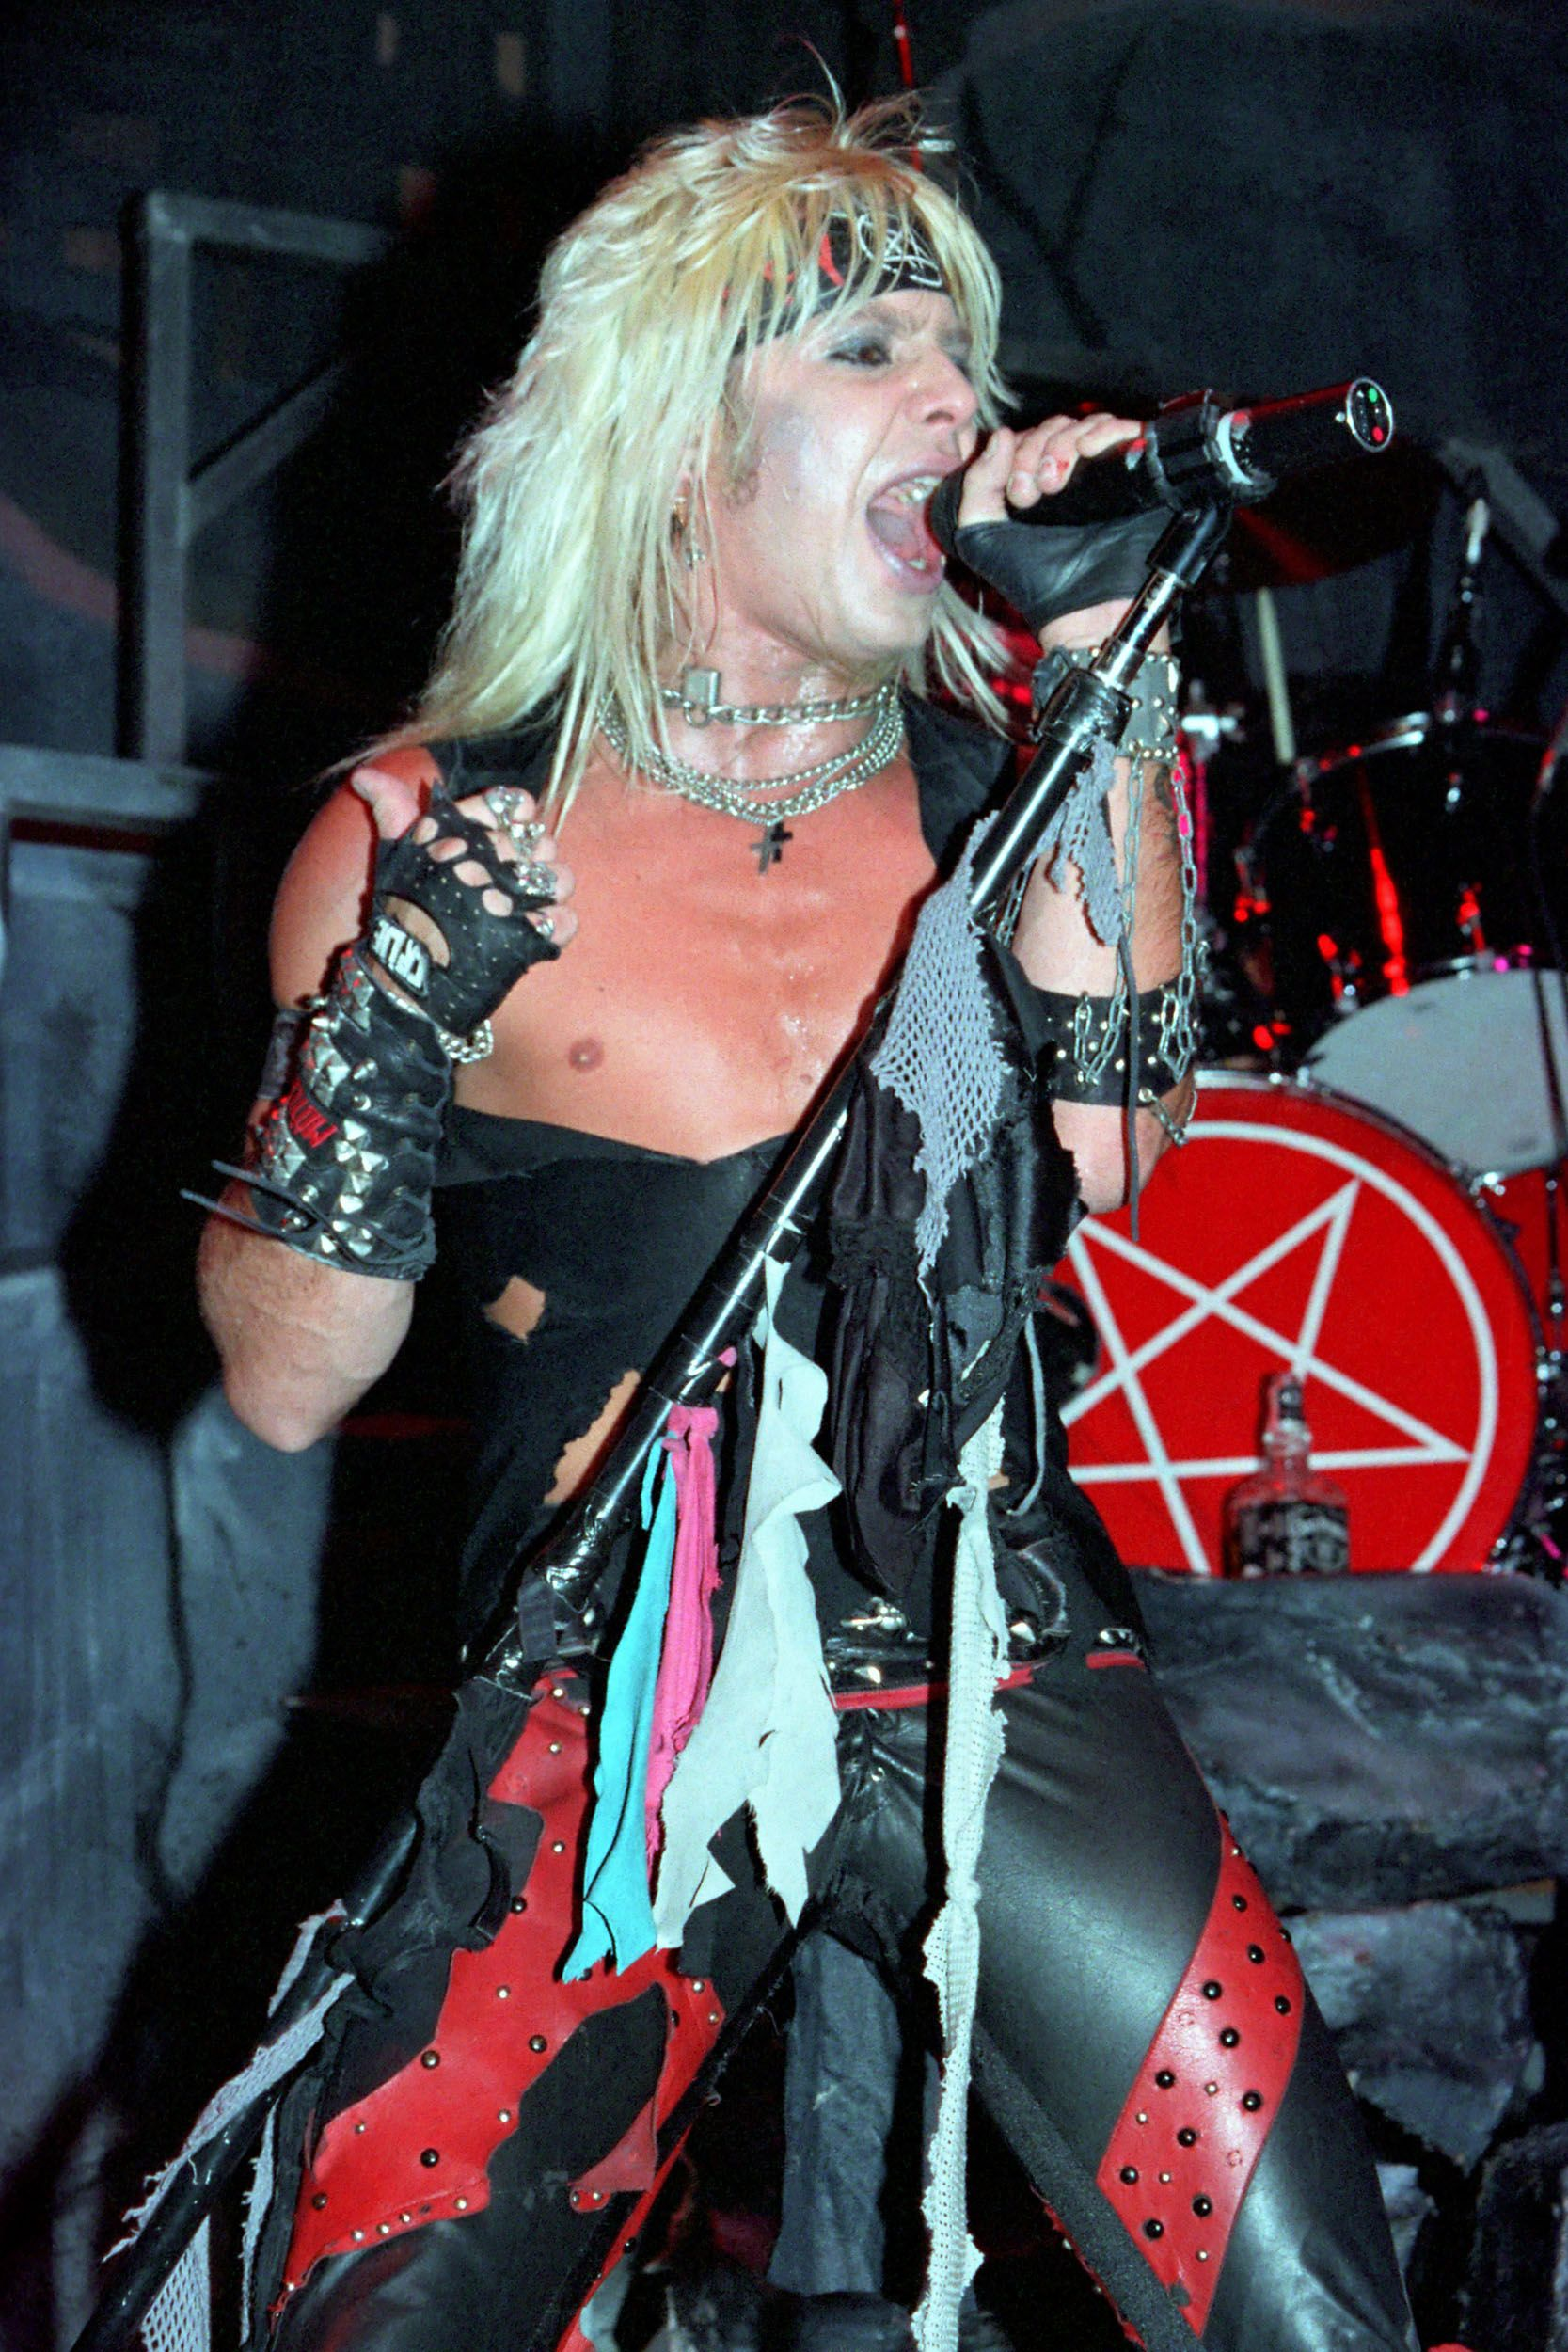 Vince Neil performs at Madison Square Garden during the Shout At The Devil tour on January 15, 1984 in NYC.